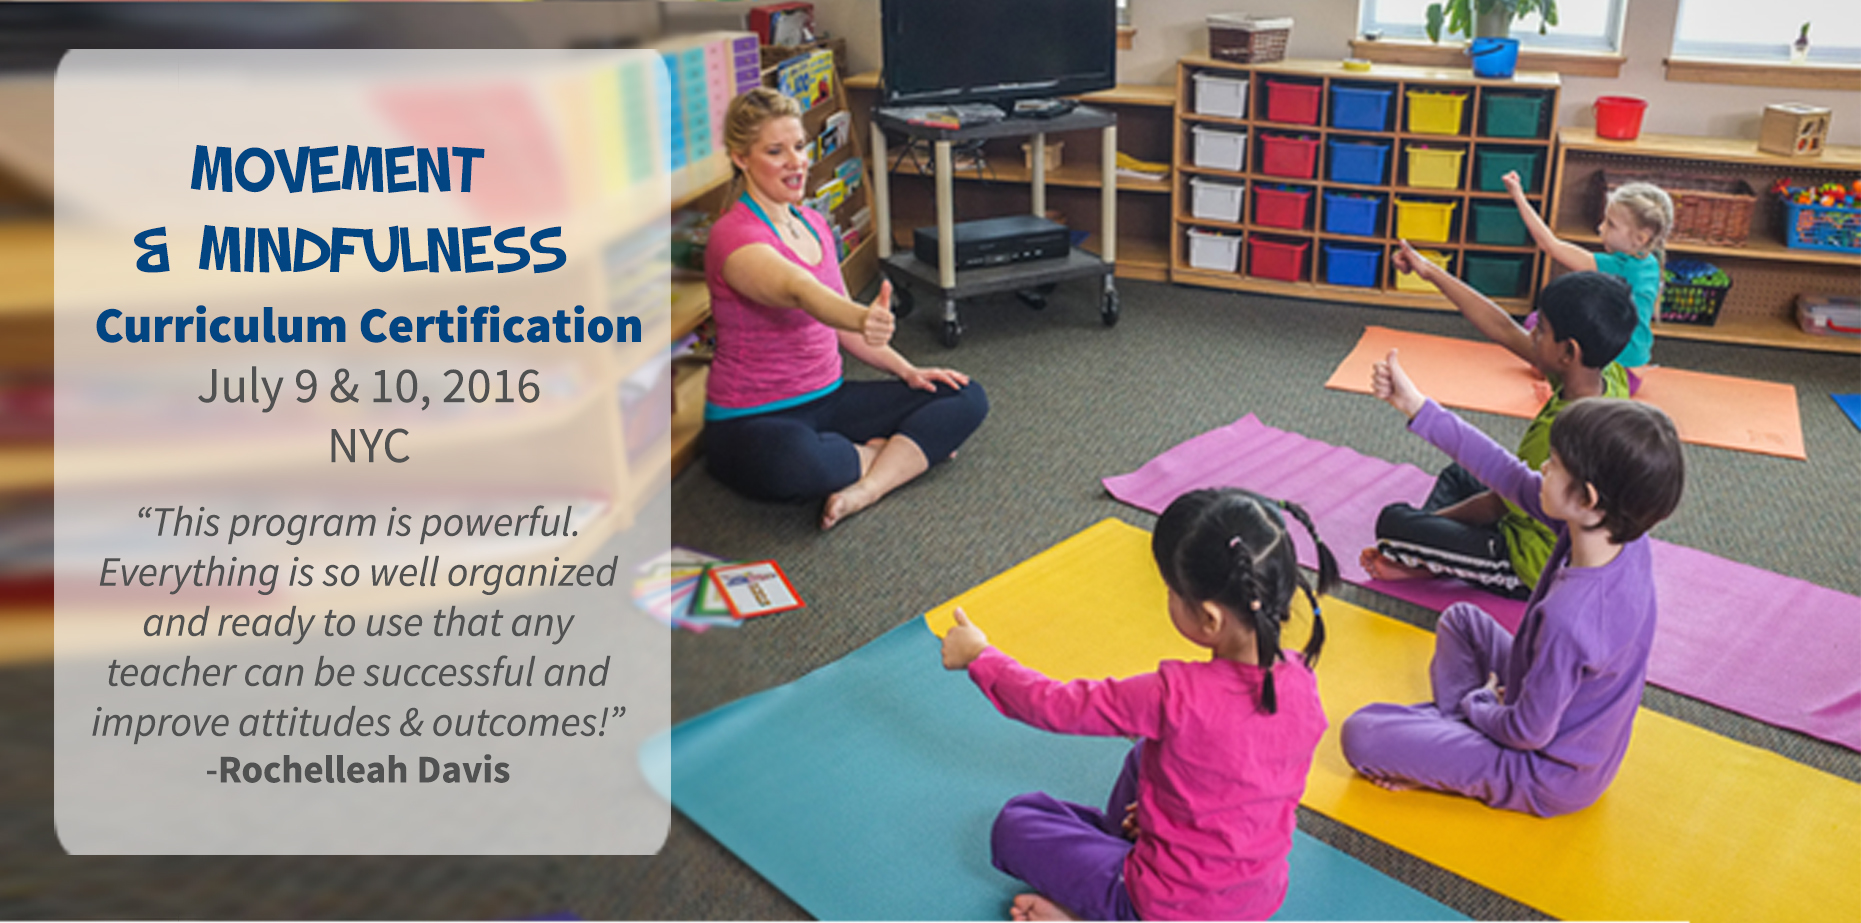 Movement mindfulness curriculum certification with leah kalish movement mindfulness curriculum certification with leah kalish ma xflitez Choice Image